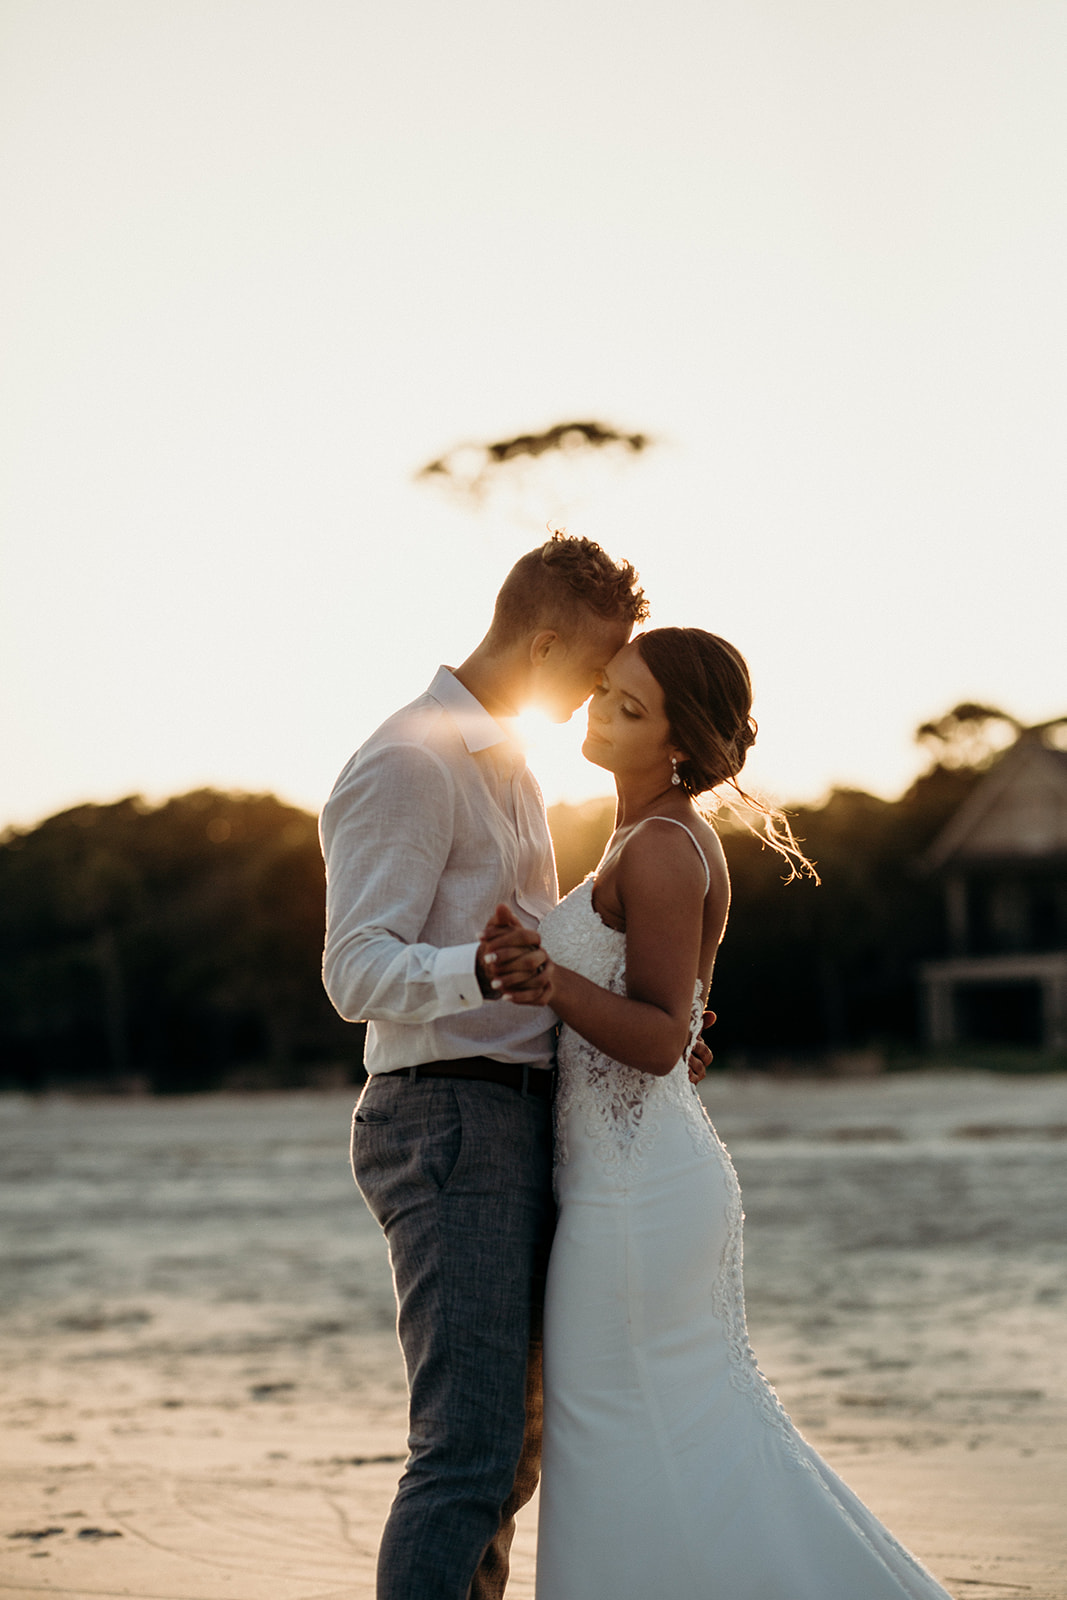 Hilton Head Island Micro Wedding - Addison + Morgan 221